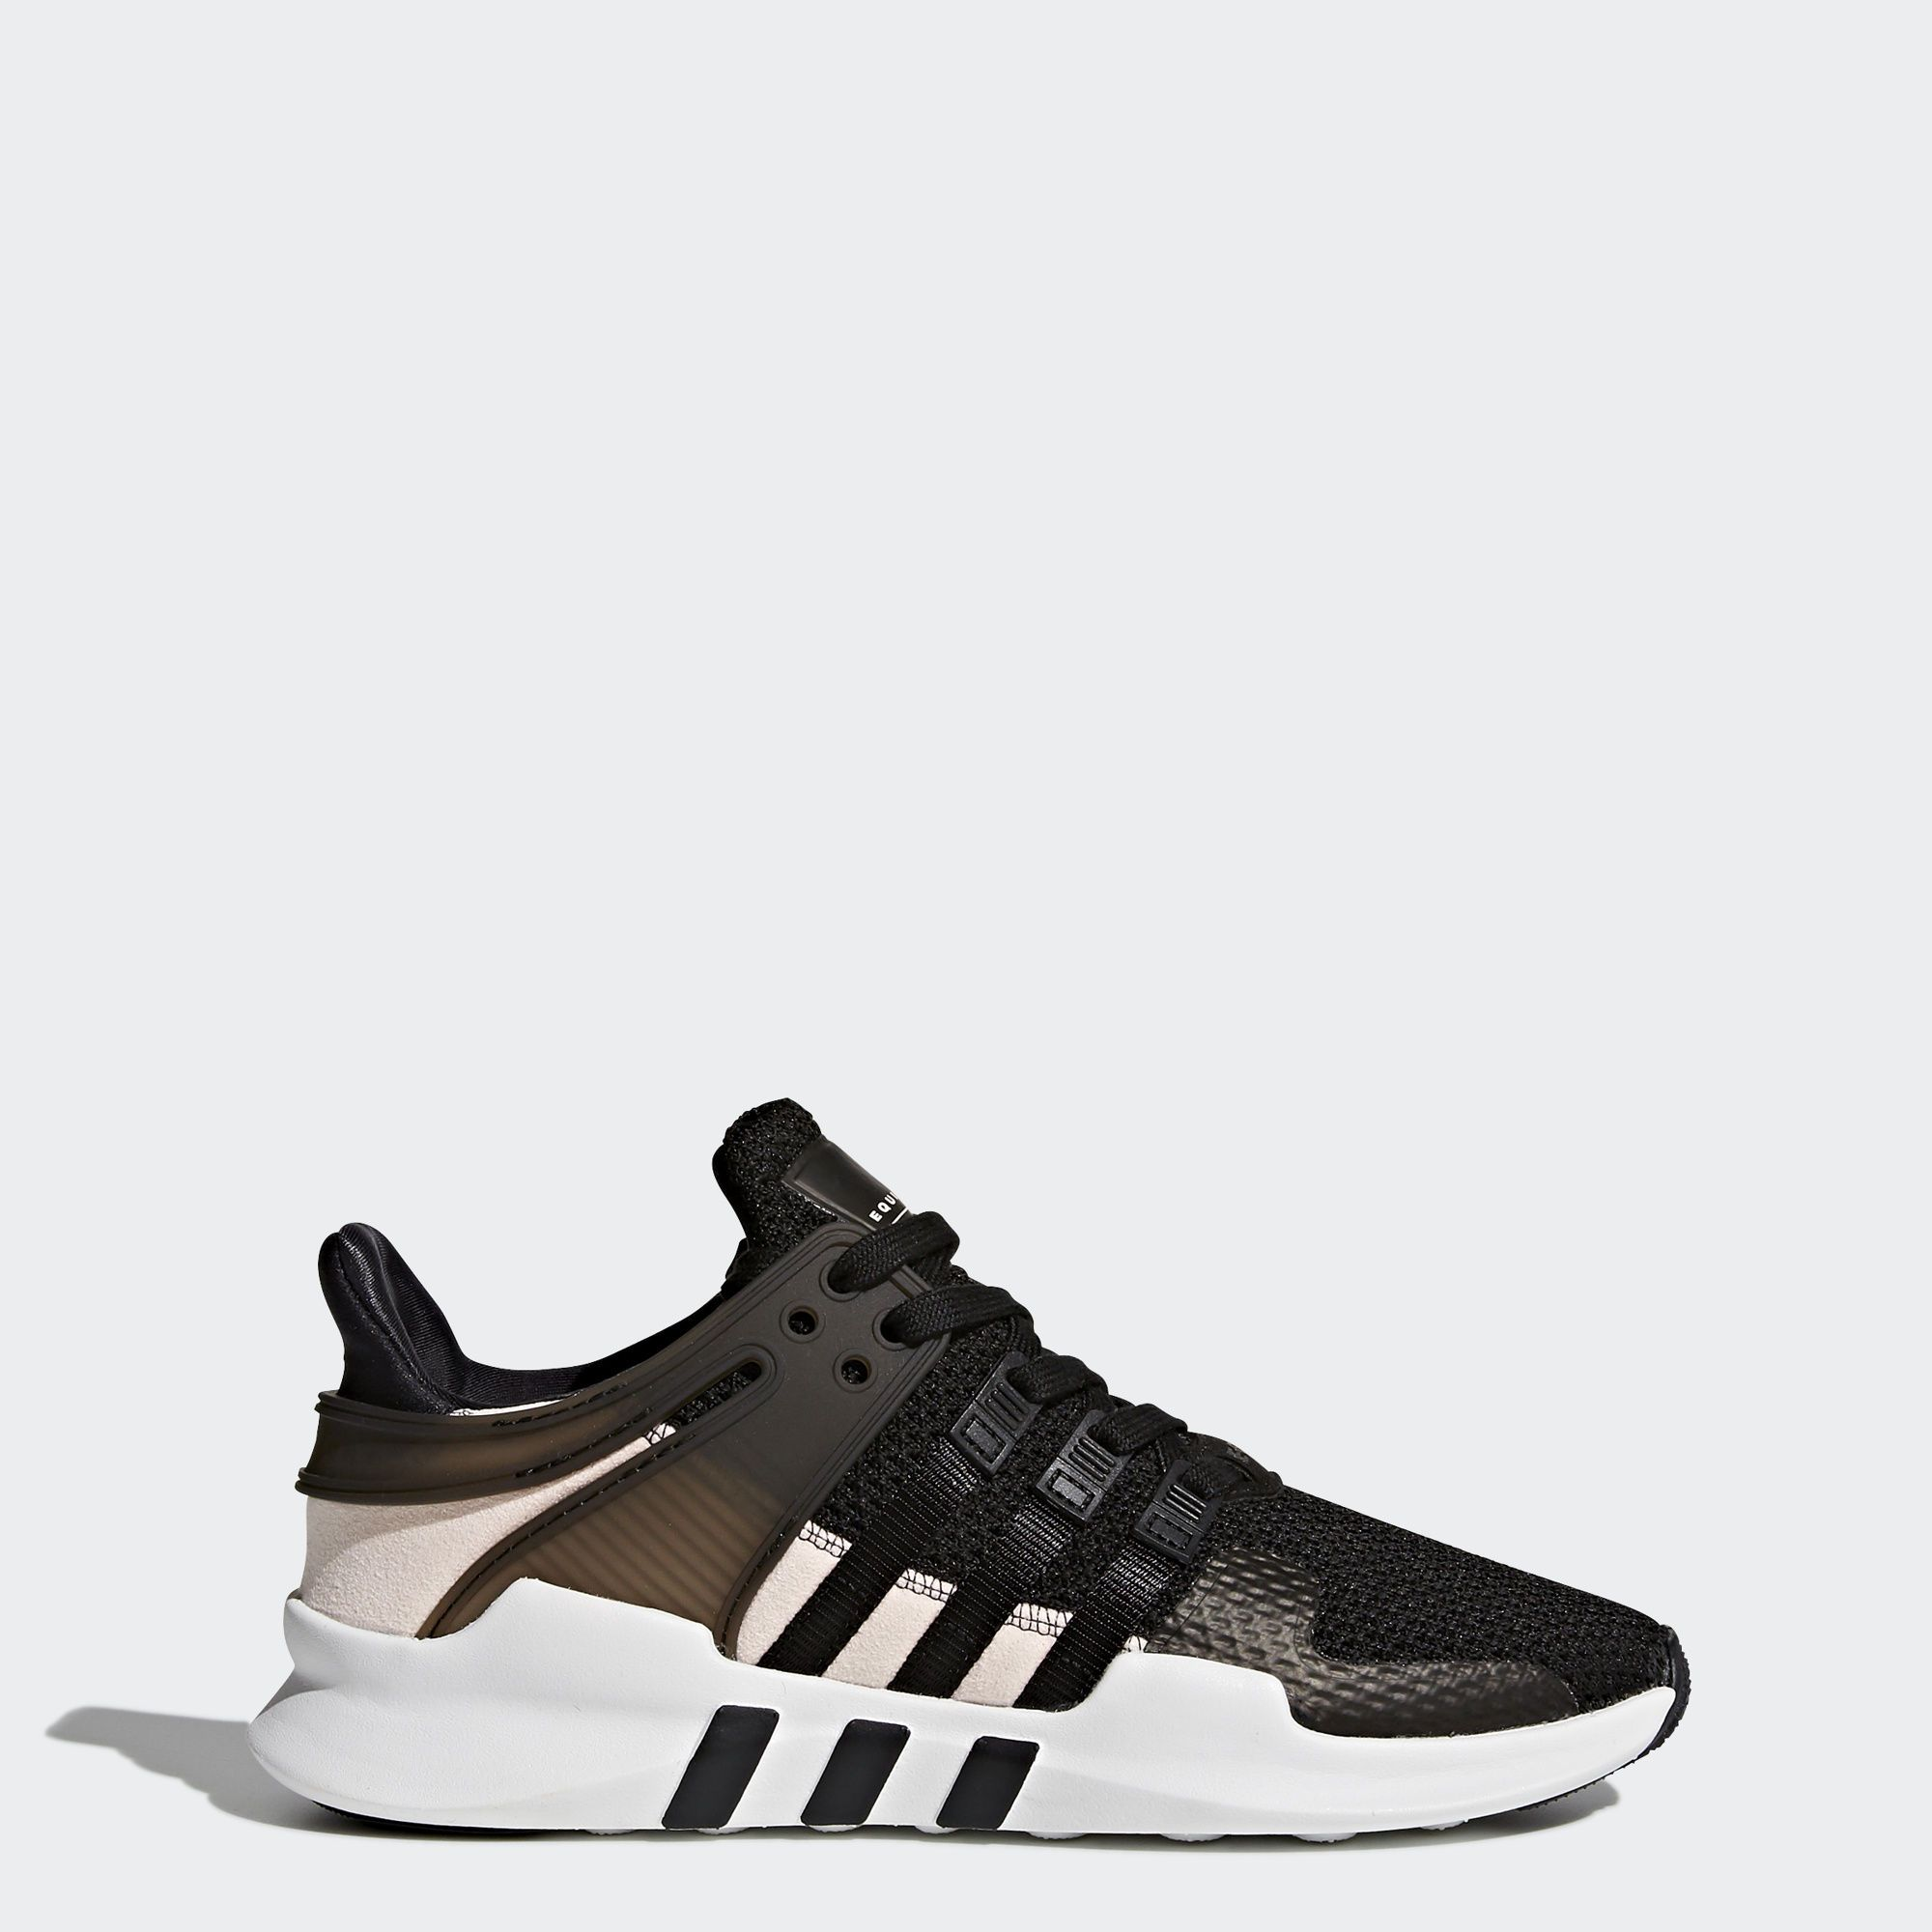 adidas-EQT-Support-ADV-Shoes-Women-039-s | Zapatos ...